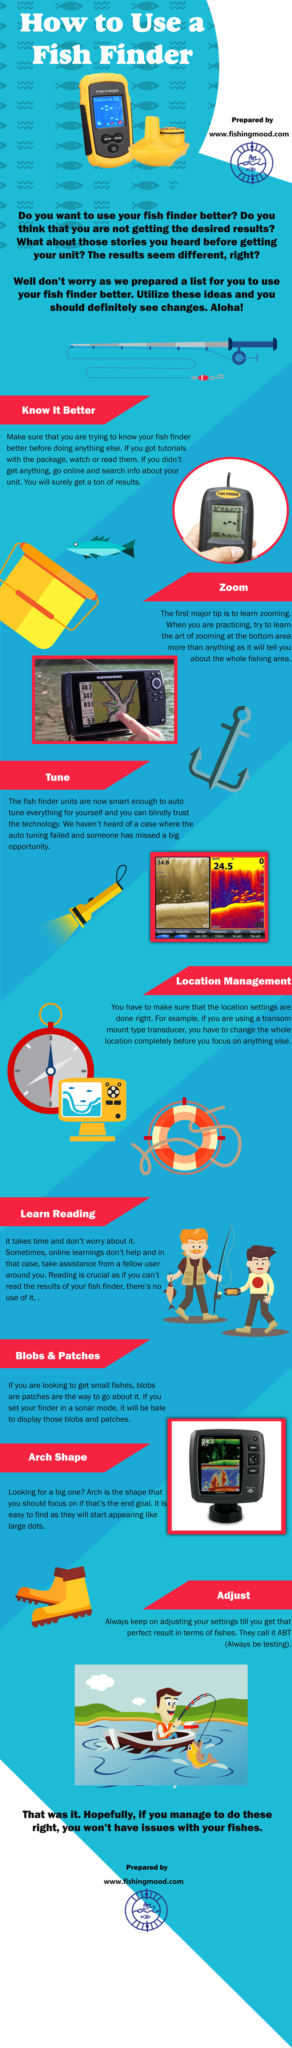 infographic how to use a fish finder